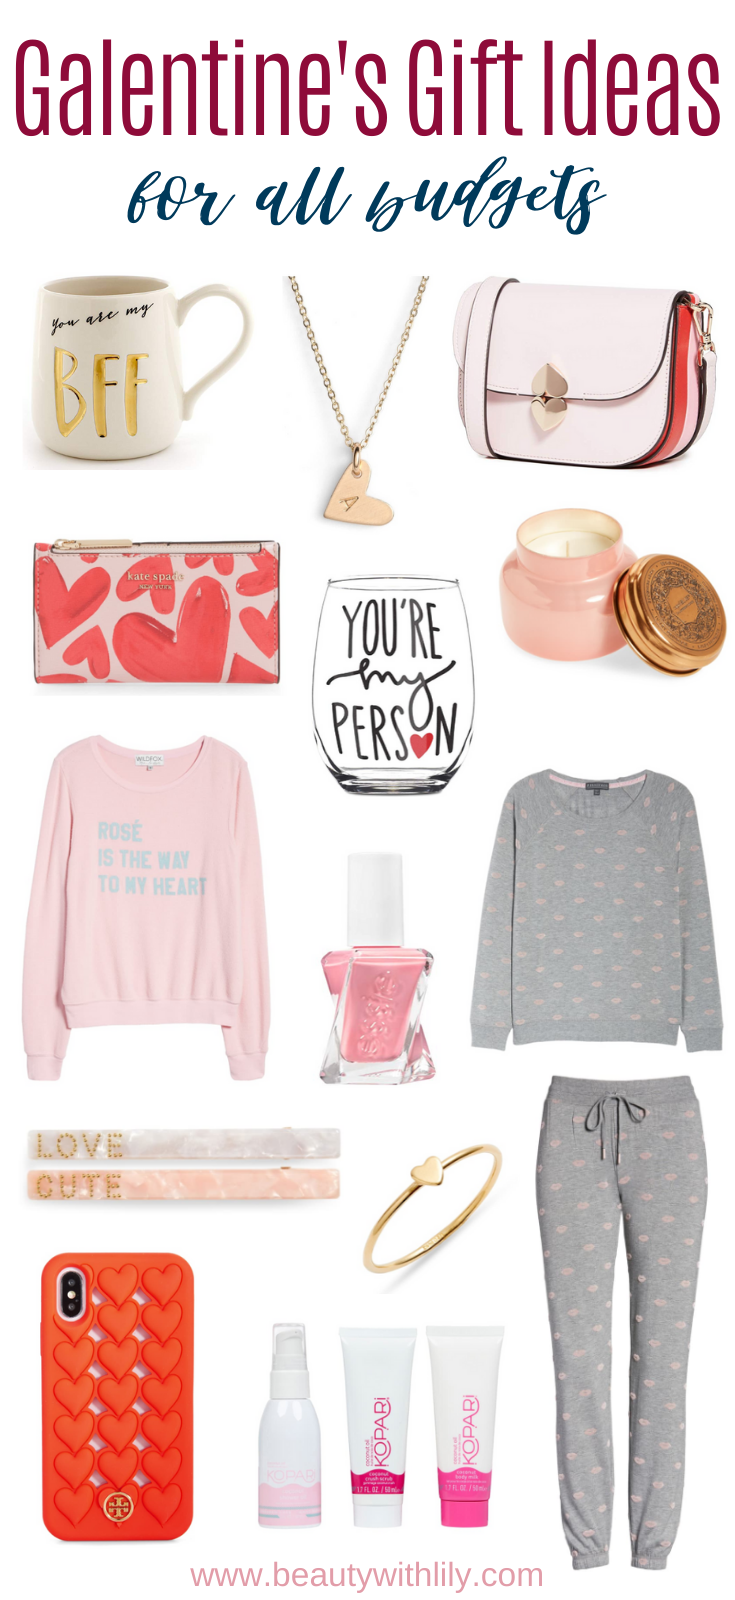 Galentine's Gift Ideas // Valentine's Day Gift Ideas For Her // Sweet Gifts for Her // Affordable Best Friend Gift Ideas // Gifts for Friends | Beauty With Lily #giftsforher #valentinesday #giftideas